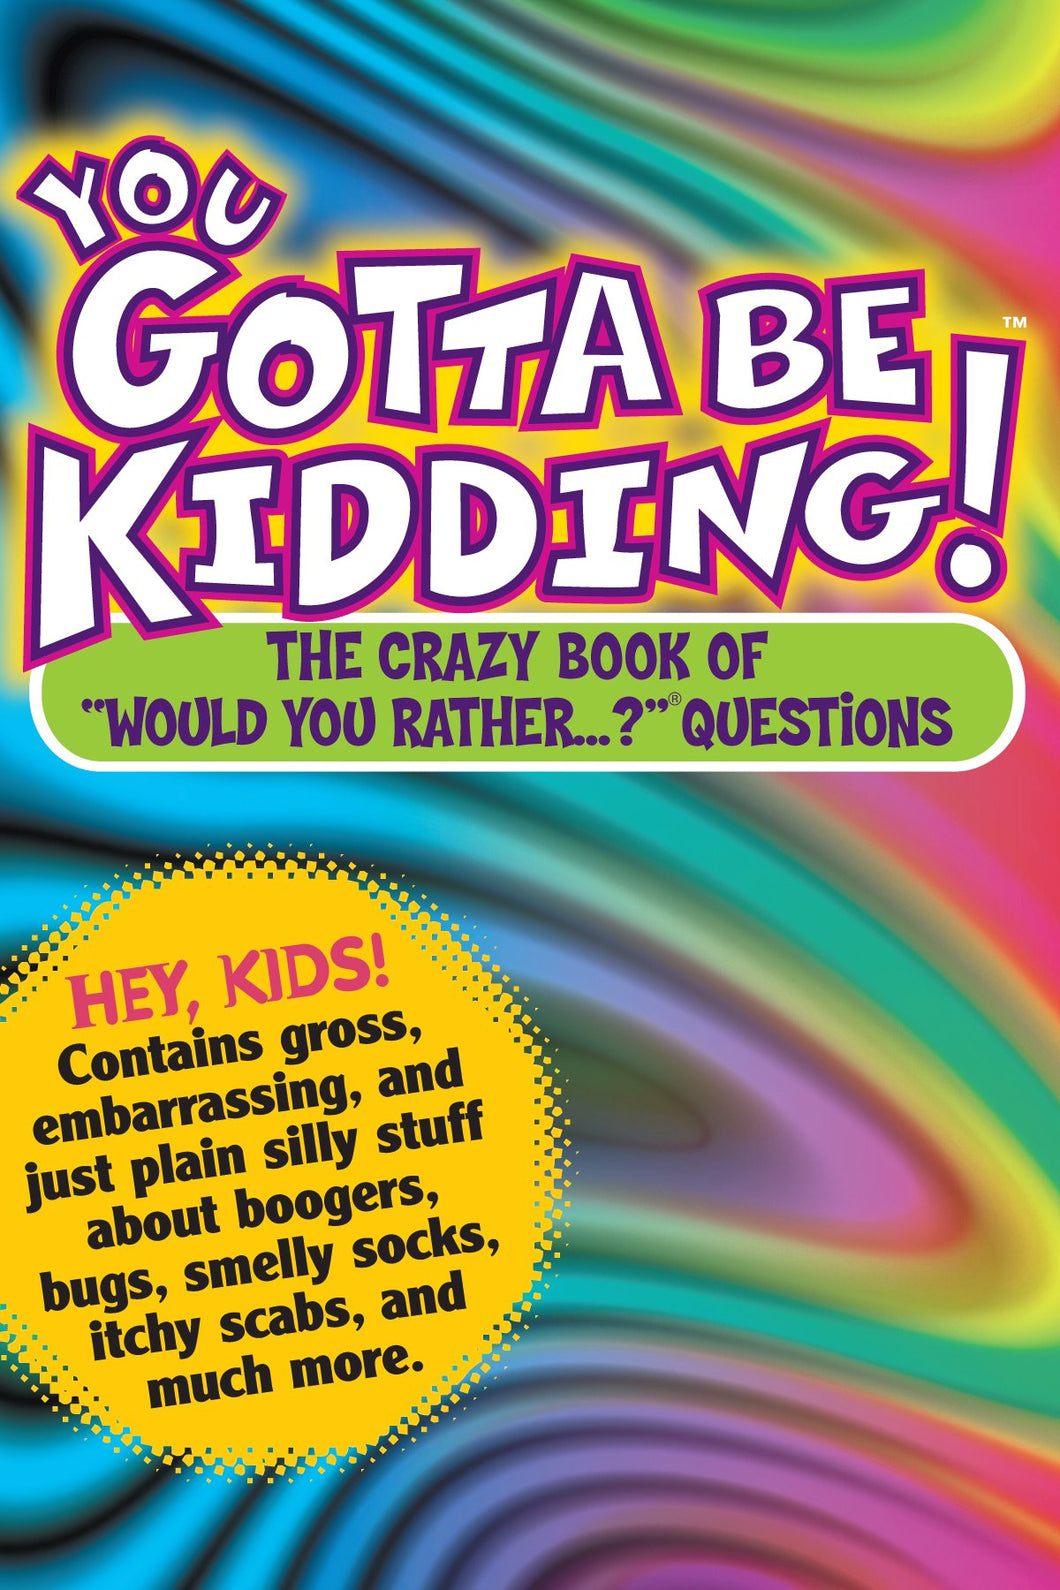 You Gotta Be Kidding! Book